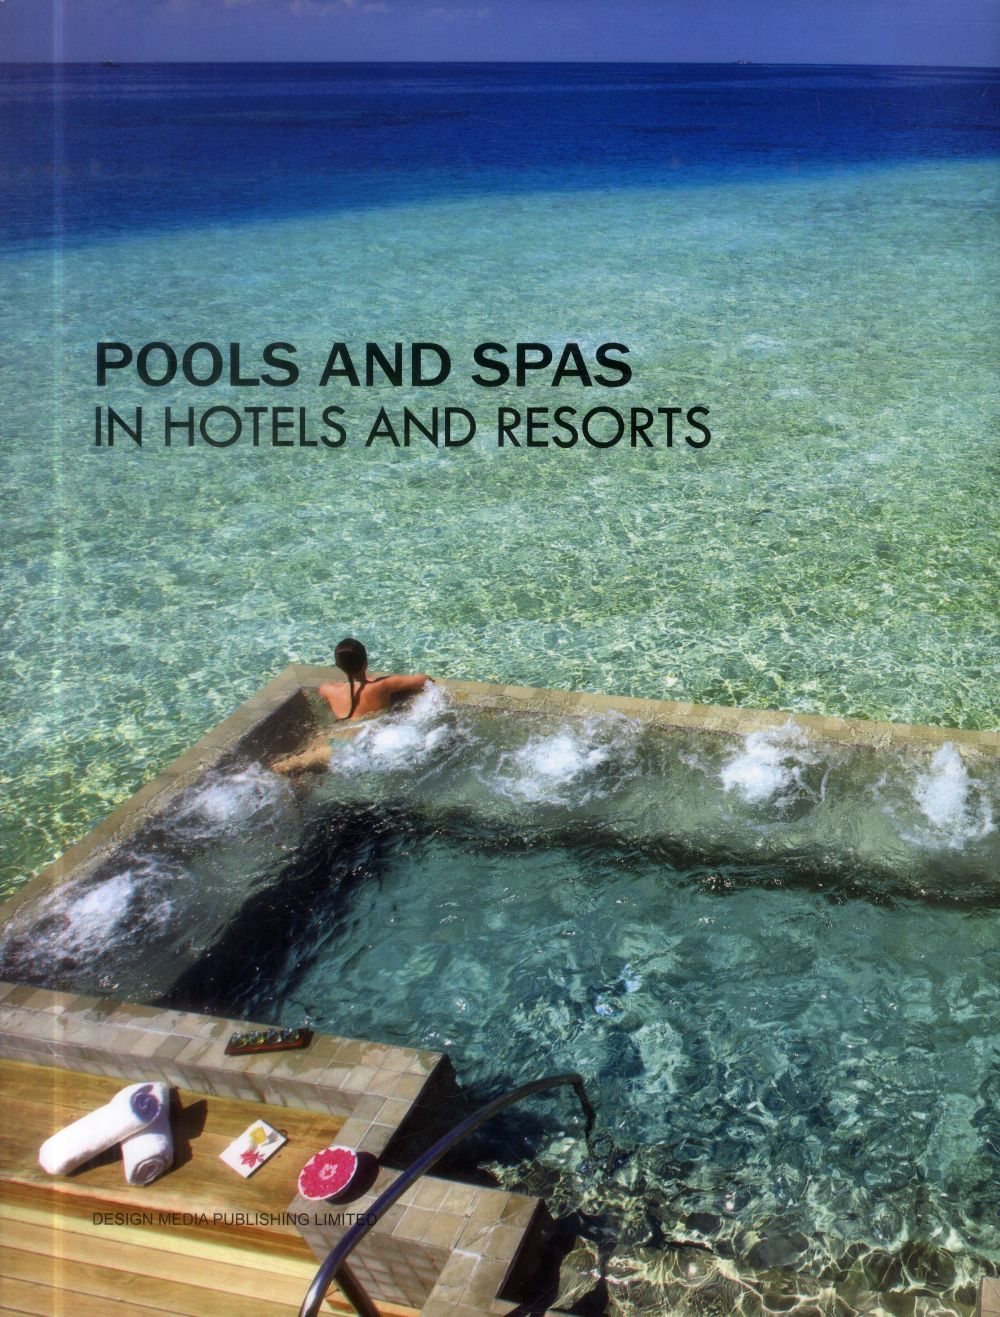 POOLS AND SPAS IN HOTELS AND RESORTS